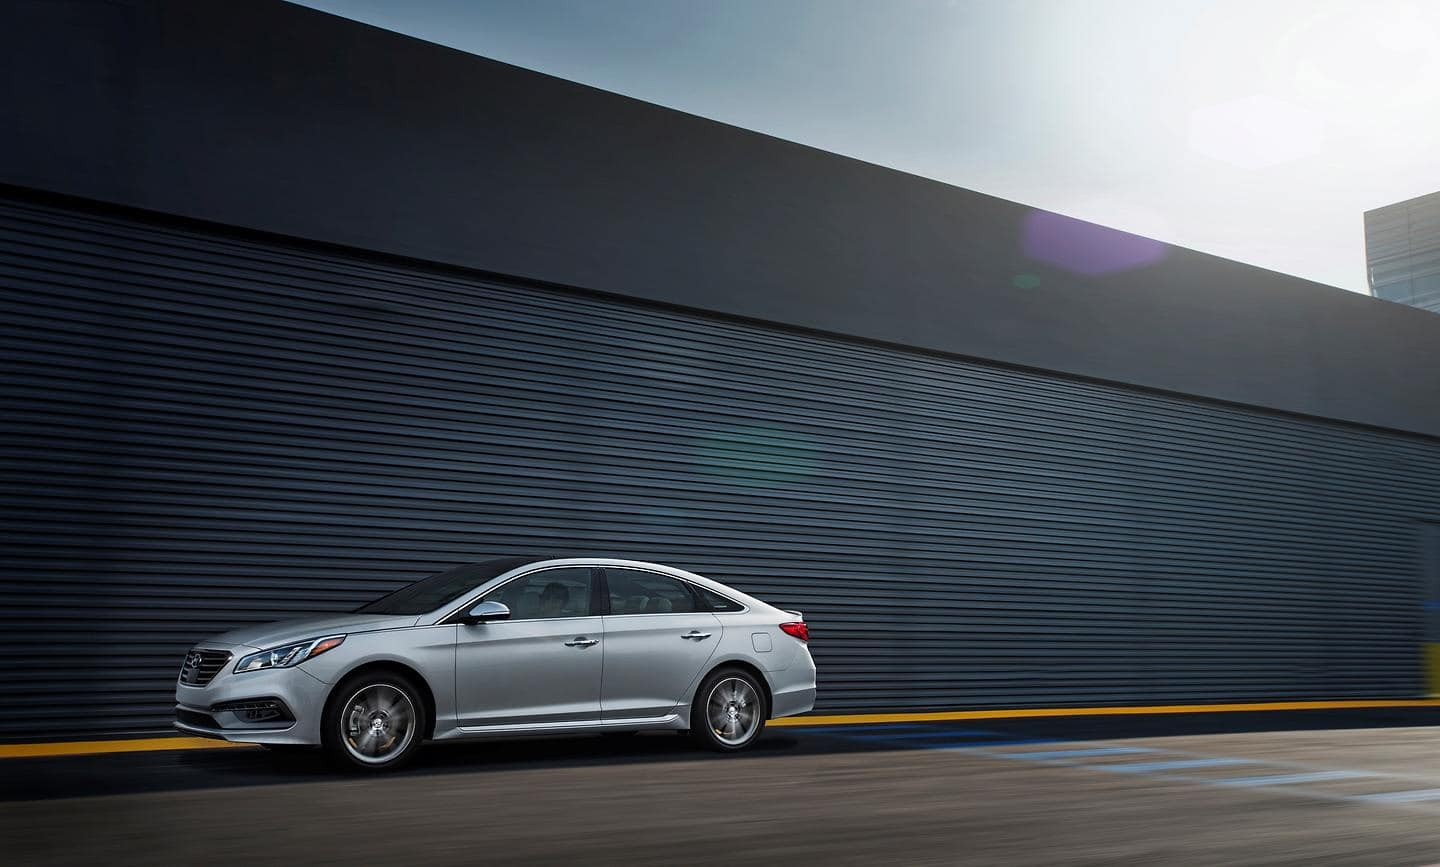 Hyundai Motor's Sonata Earns IIHS TOP SAFETY PICK+ Award